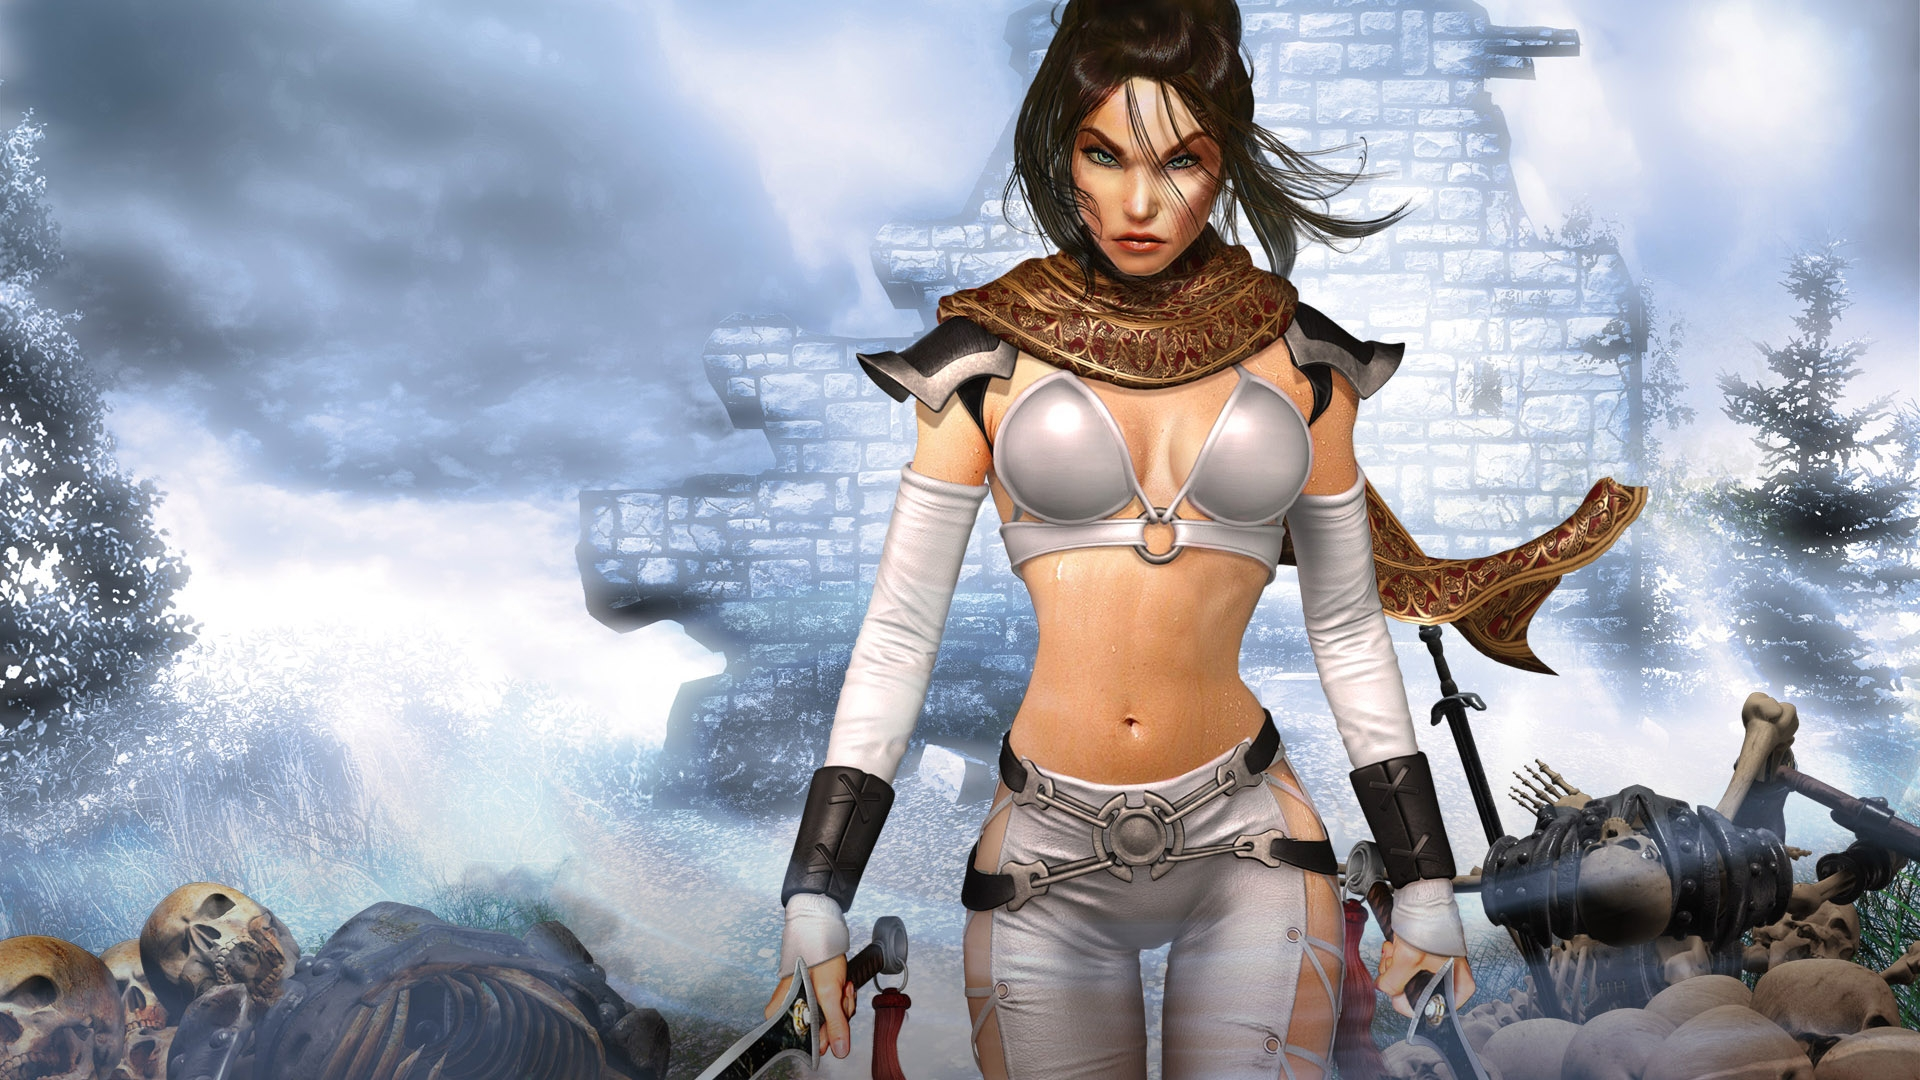 Everquest girls in costumes nackt clips